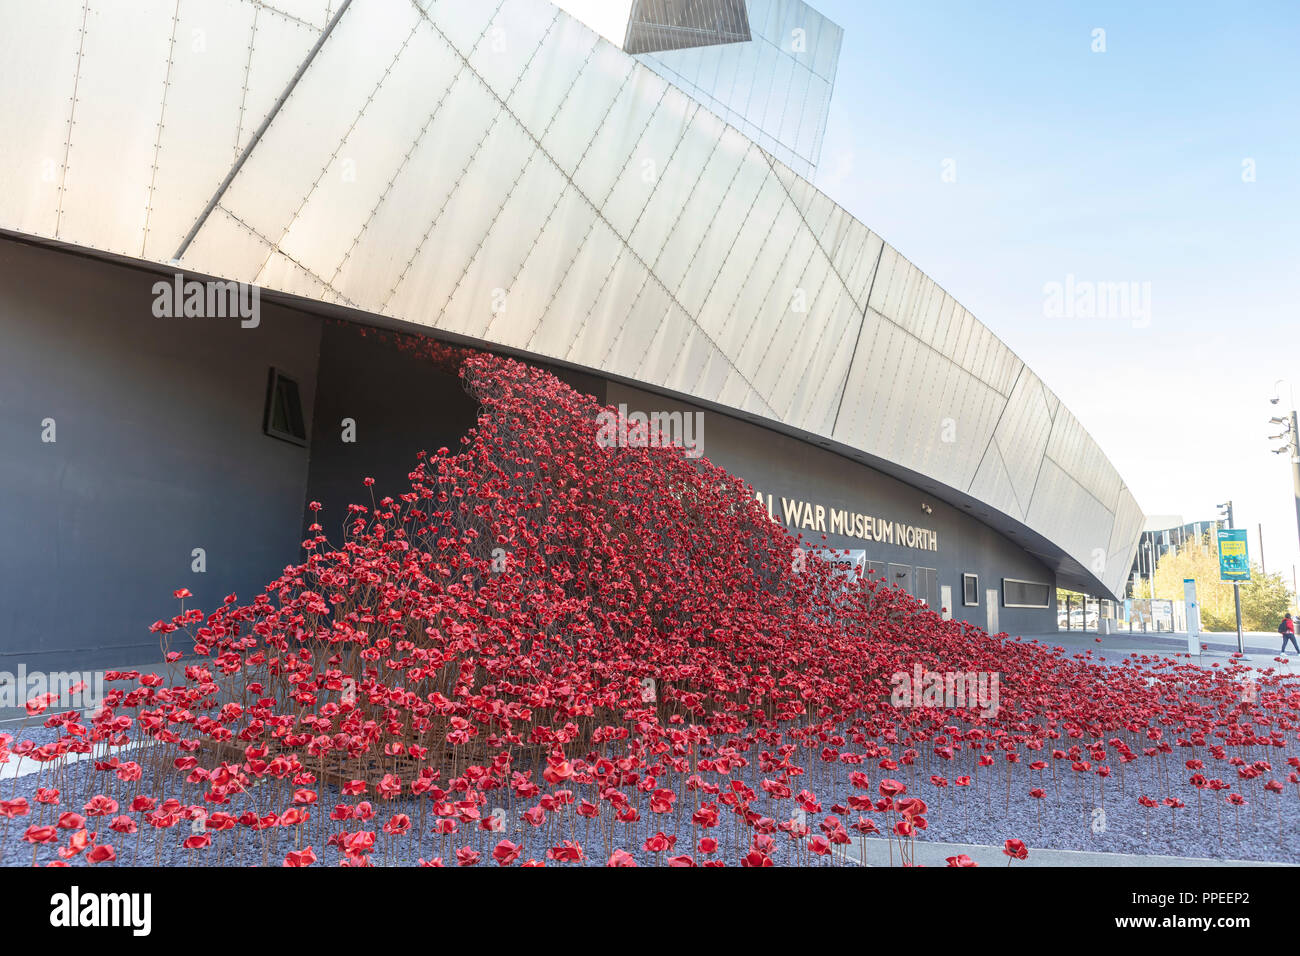 The iconic red poppy sculpture Wave by artist Paul Cummins and designer Tom Piper outside the IWM North. - Stock Image